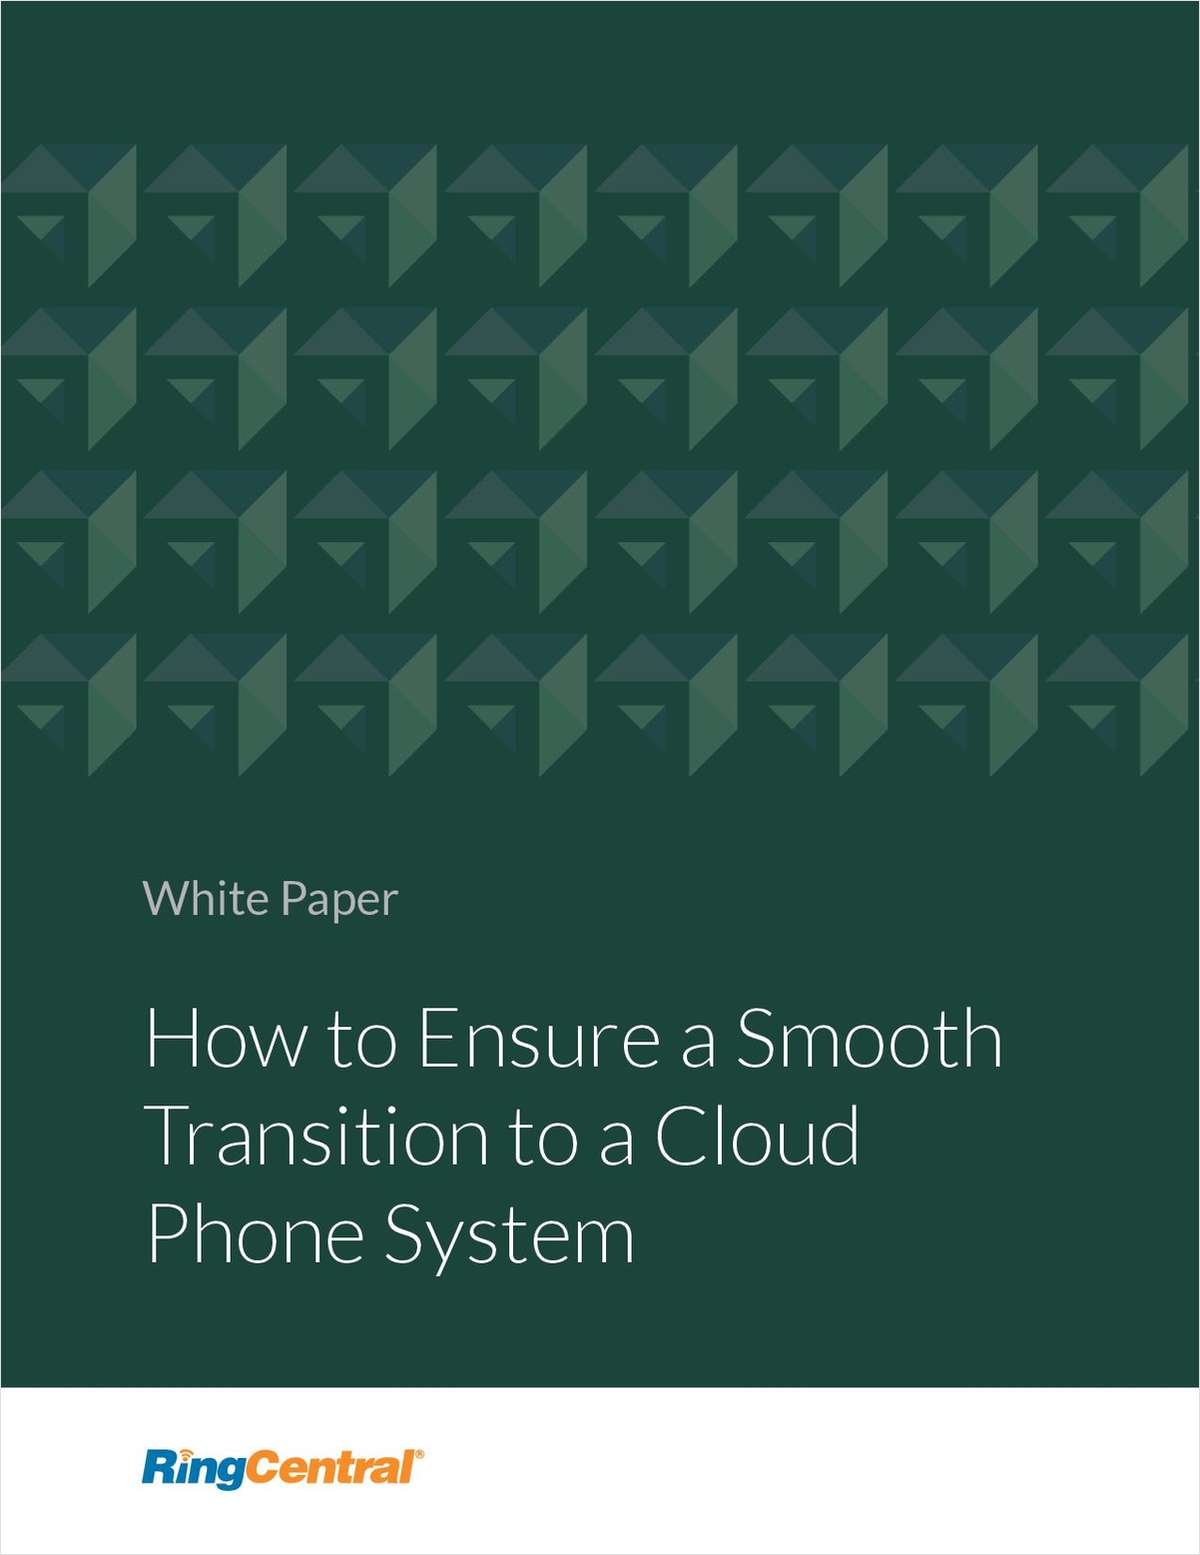 How to Ensure a Smooth Transition to a Cloud Phone System